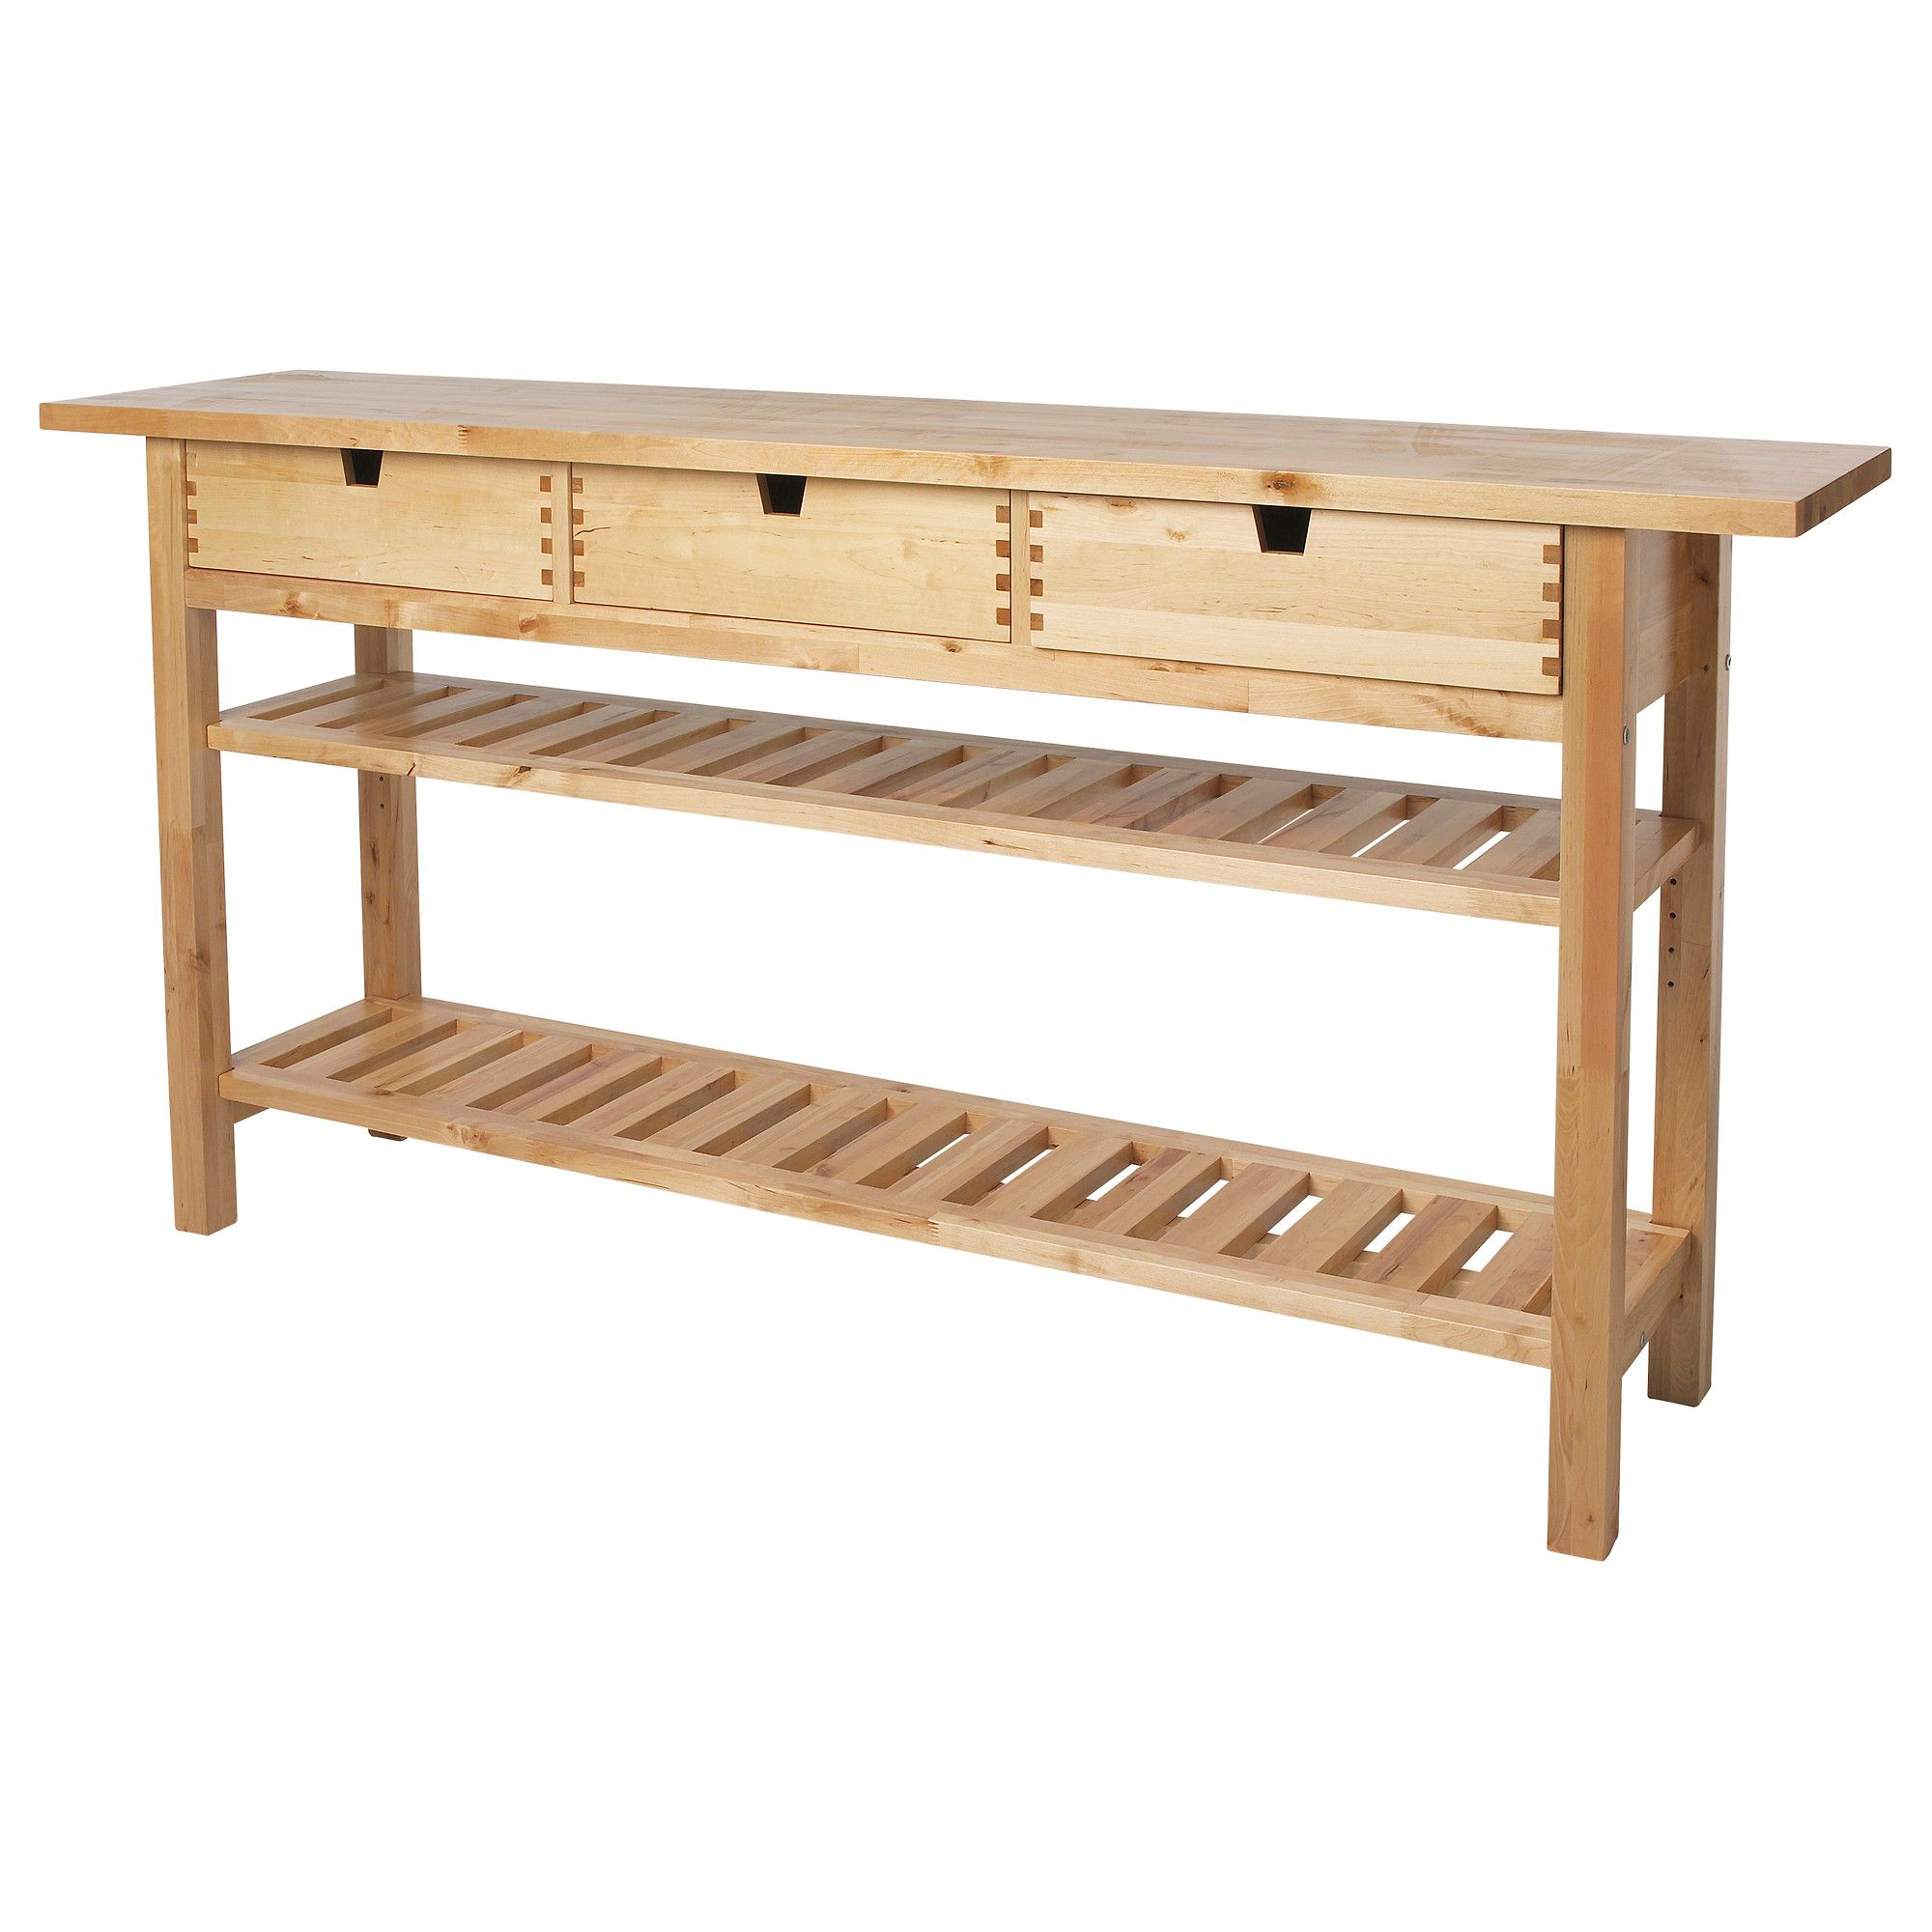 kitchen console table IKEA Quality furniture at affordable prices Find everything from smart storage solutions mattresses textiles wardrobes to kitchens more